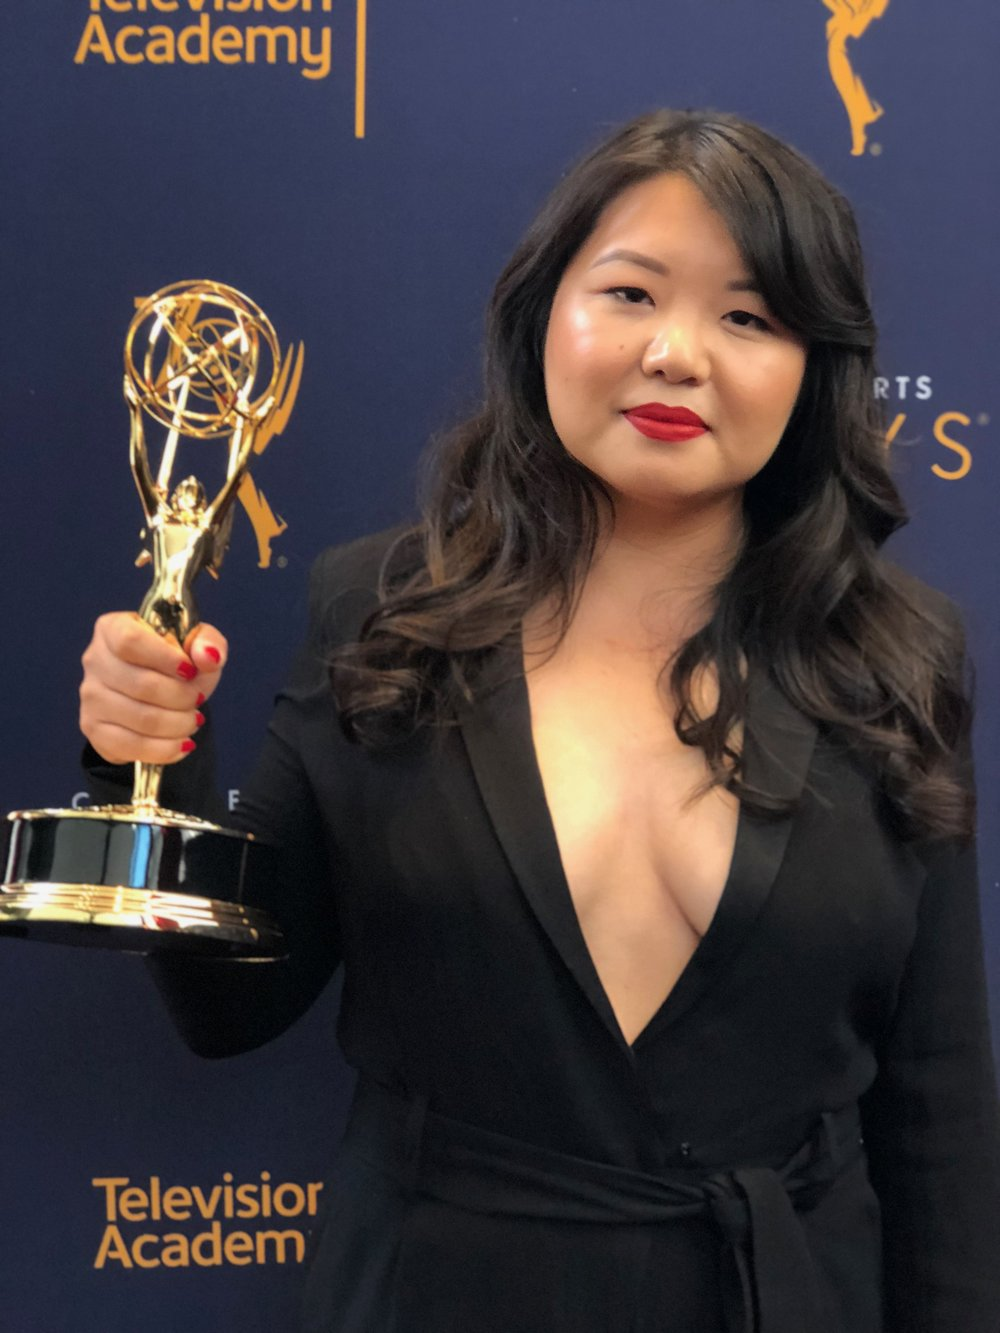 "Jessica Gao - Jessica Gao is a Los Angeles-based screenwriter. She was born in Beijing and raised in the San Gabriel Valley, a suburb of LA. She has written for Rick & Morty, Silicon Valley, Corporate, and Robot Chicken. She co-hosts ""Whiting Wongs,"" a podcast about race and writing with Dan Harmon. She recently won an Emmy Award for her work on"